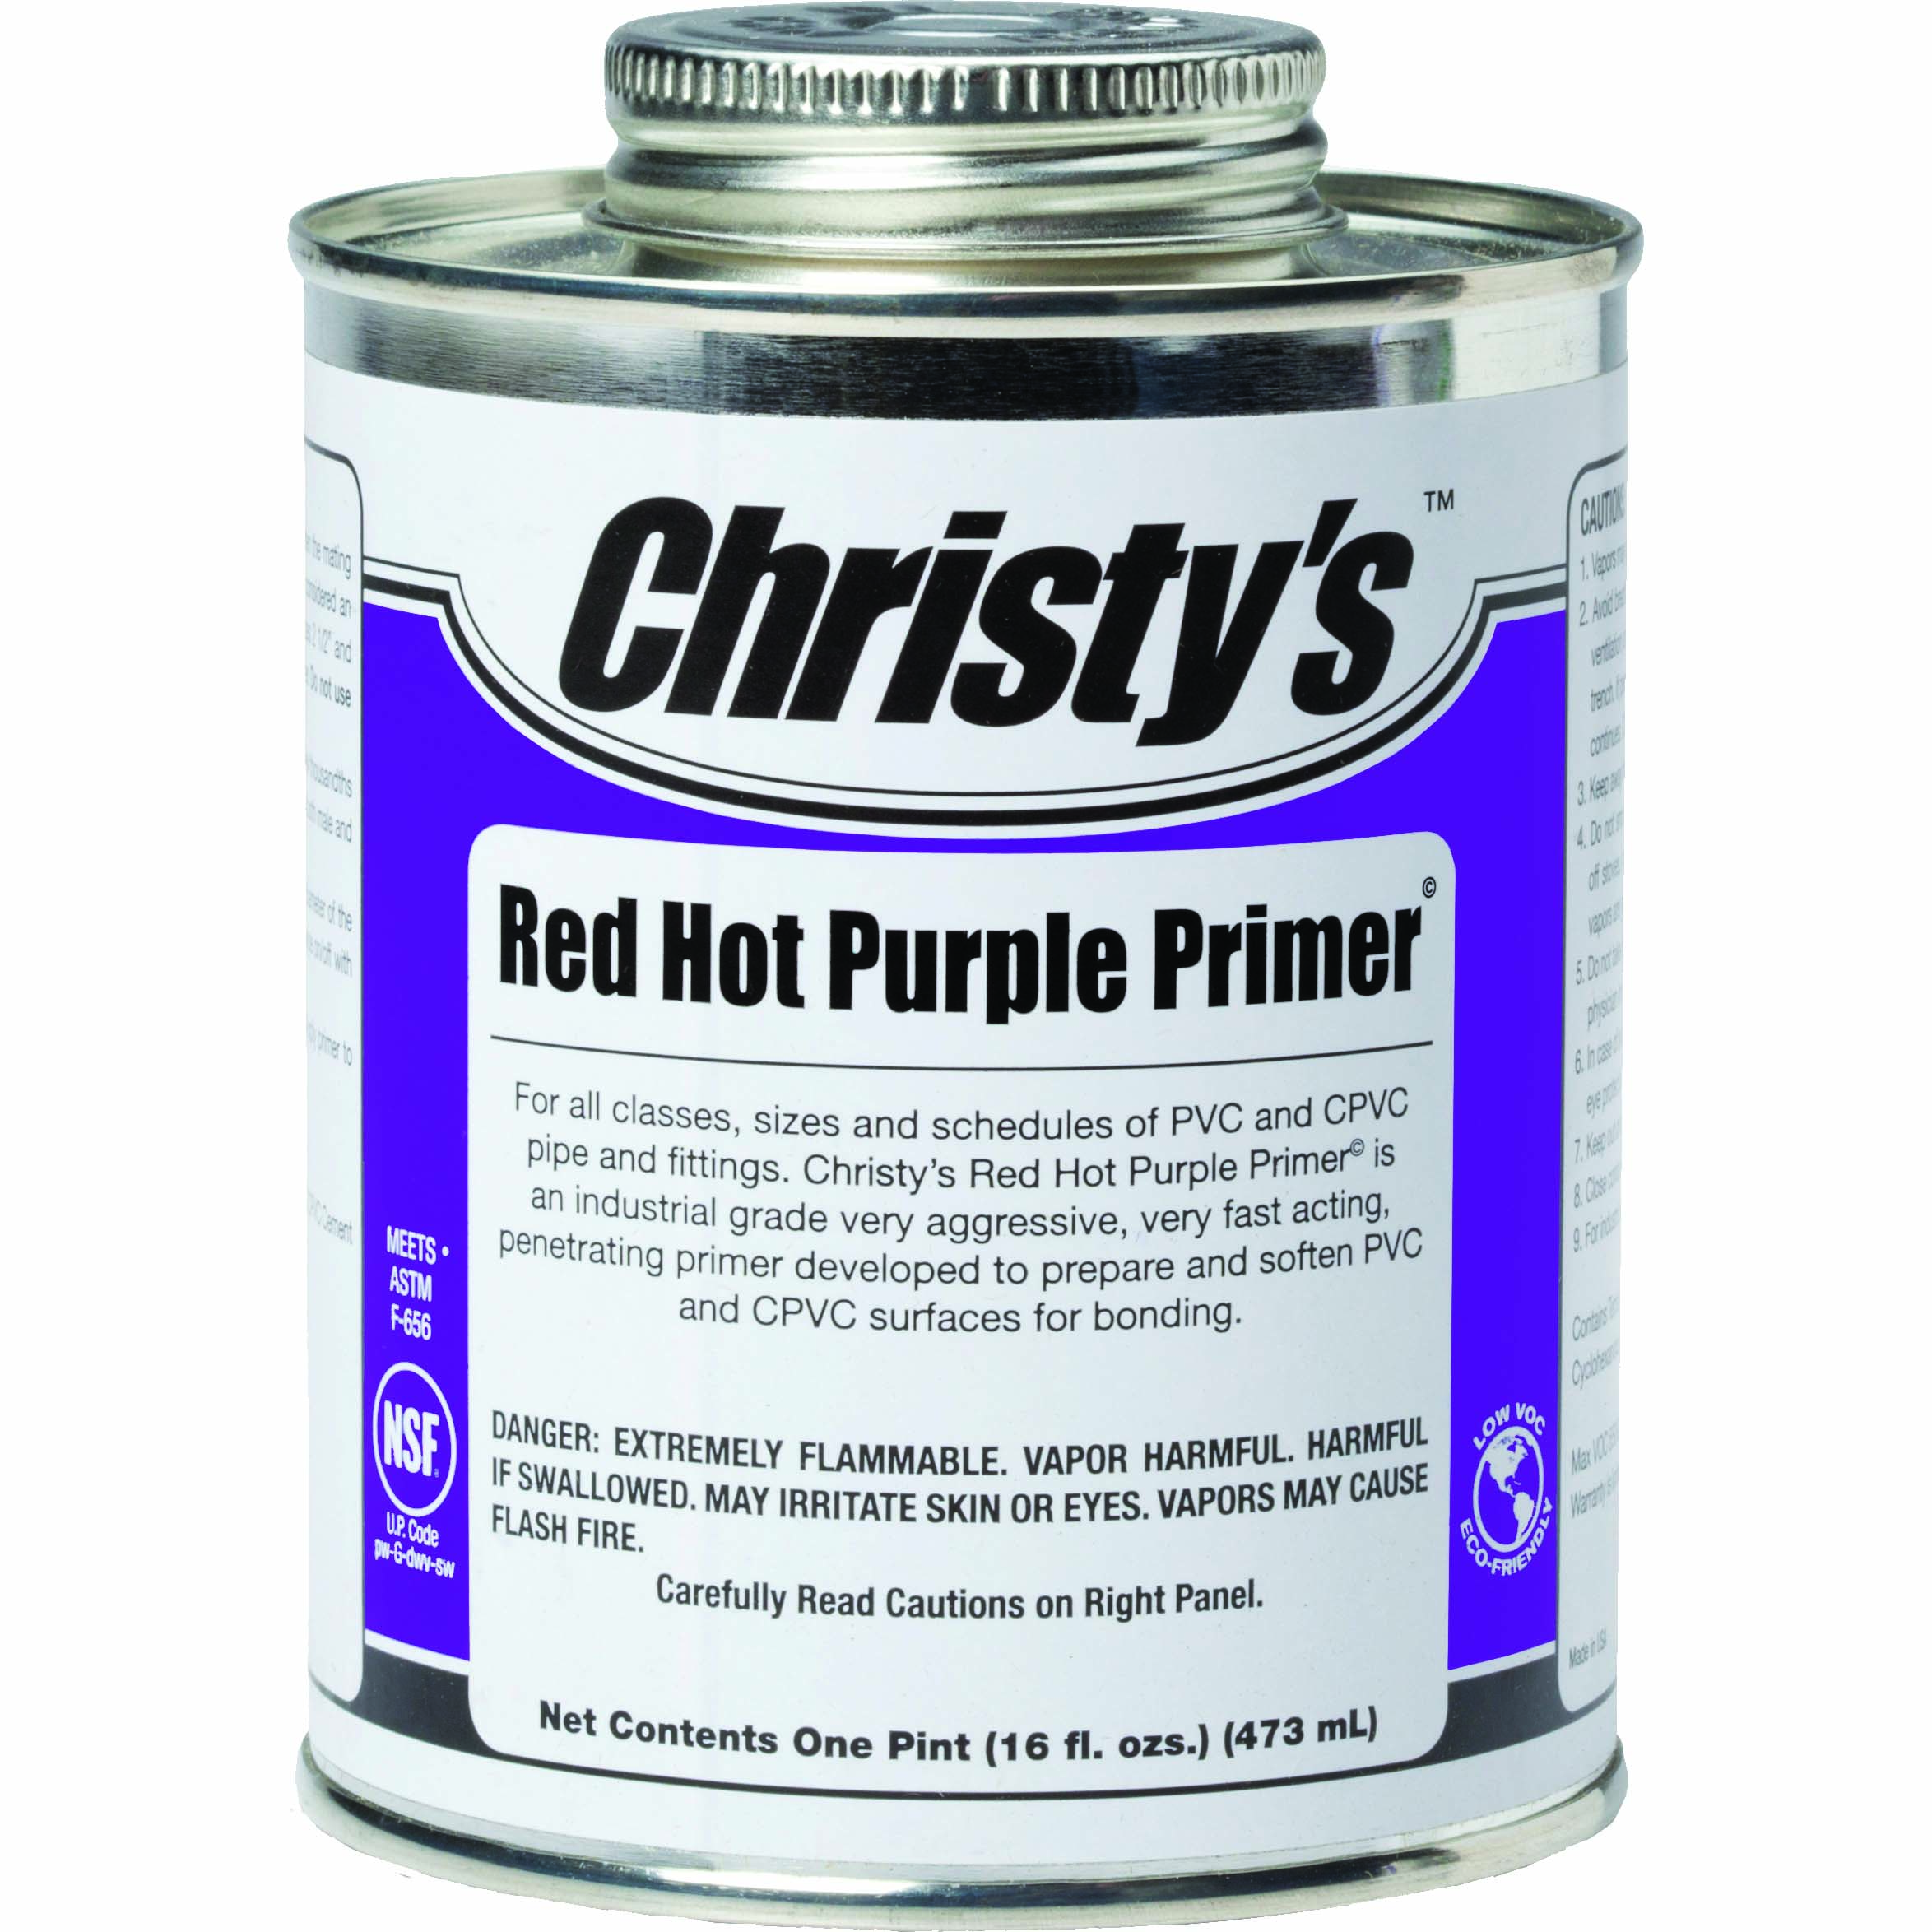 Red Hot Purple Primer